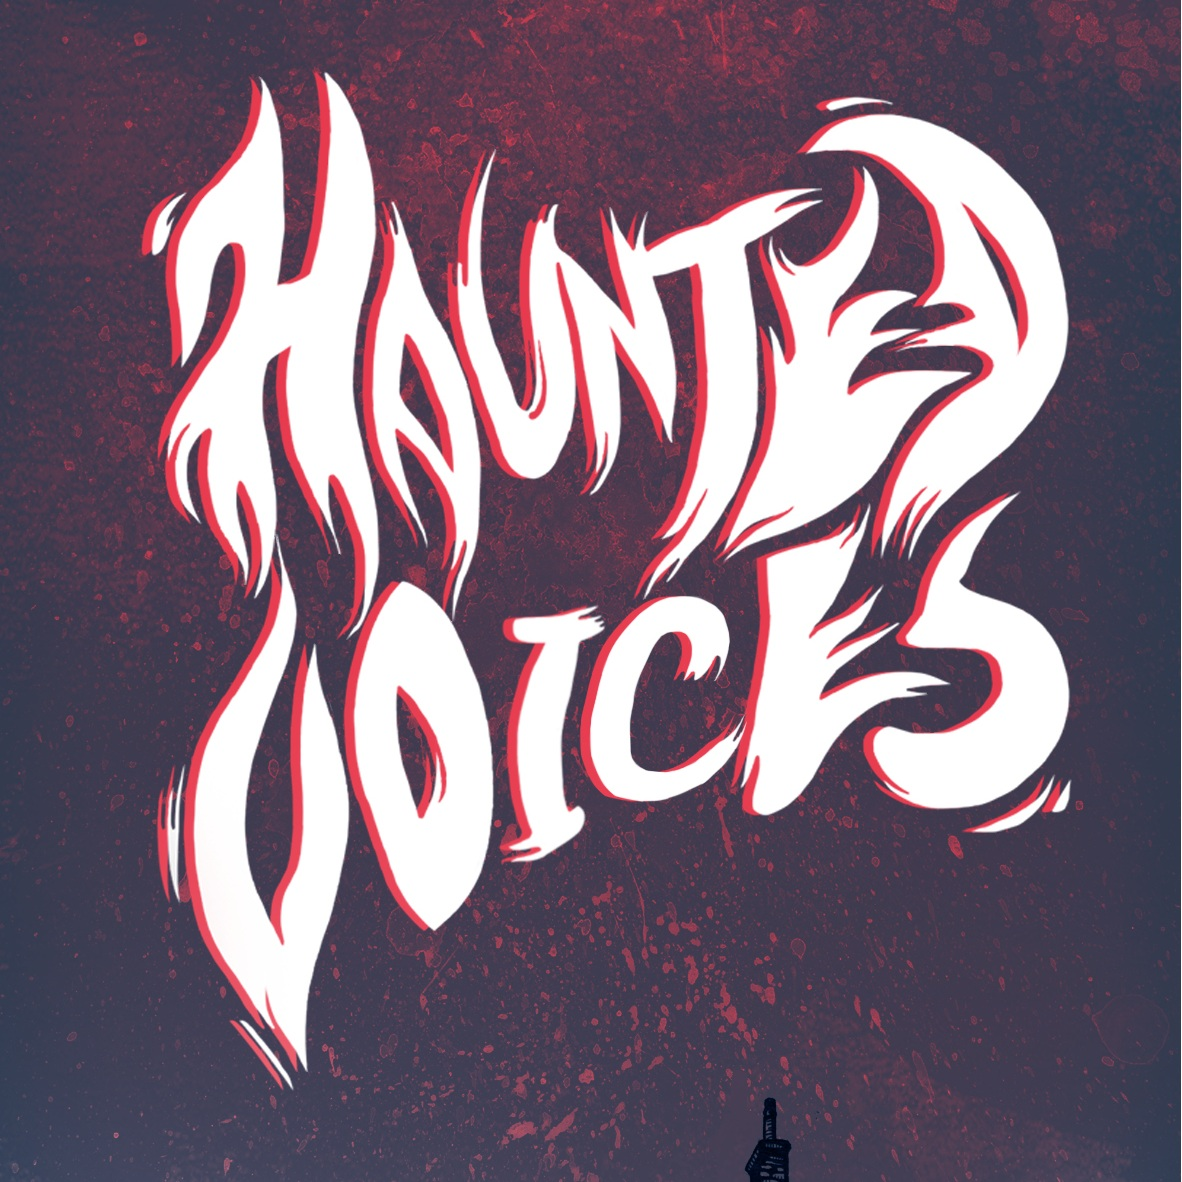 Haunted Voices: An Anthology of Gothic Storytelling from Scotland - Haunted Voices – a bold and ambitious anthology in both text and audio – showcases some of Scotland's best oral storytellers, from archived stories of past masters to the work of contemporary performers, and their most disturbing tales of terror.Expect monstrous tongue-eaters, shadowy demons, haunted video tapes, wicked priests, strange shapes in the darkness, a retelling of Poe's The Raven… and more!